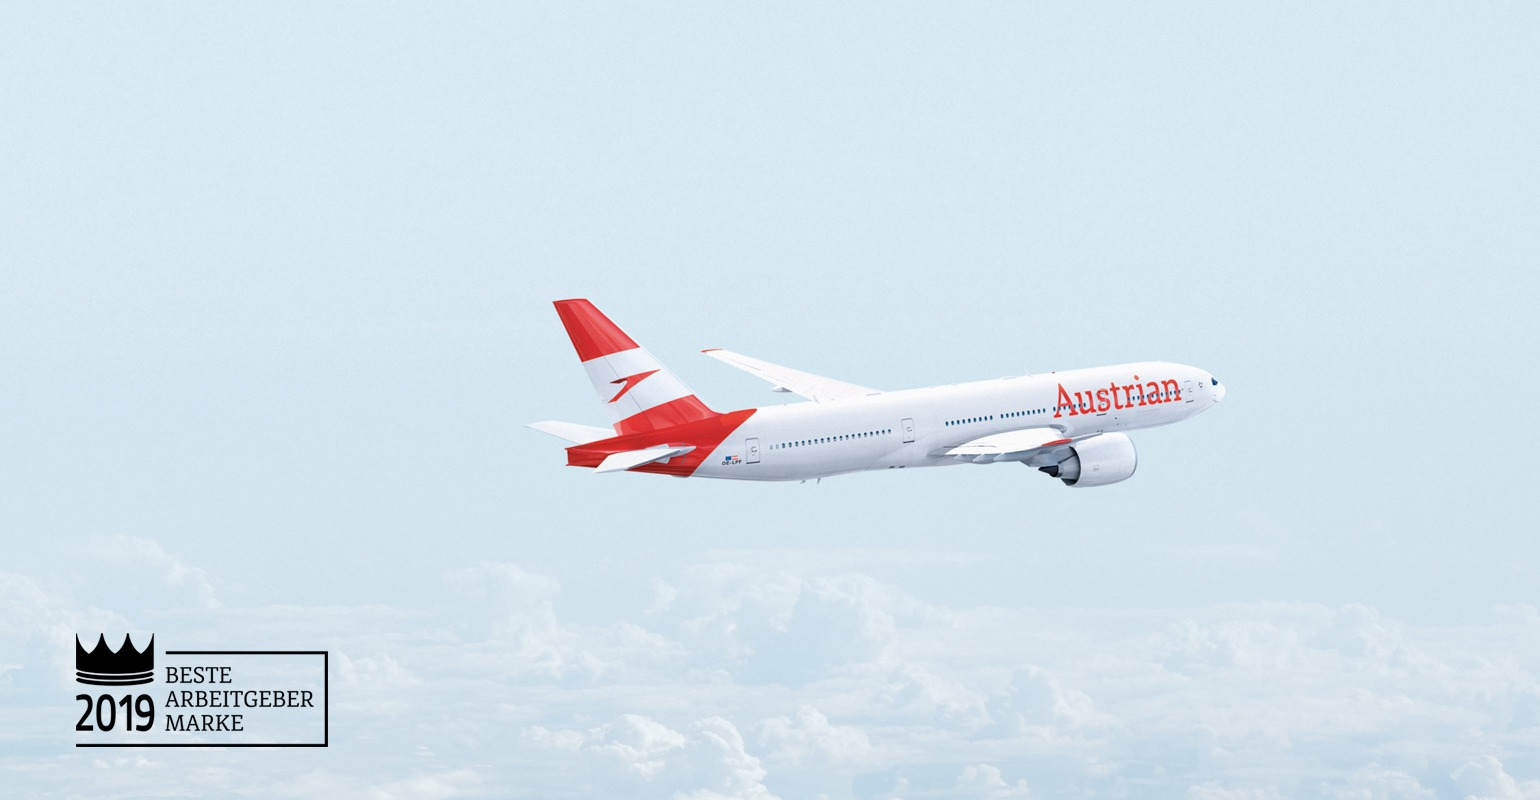 Austrian Airlines Employer Branding